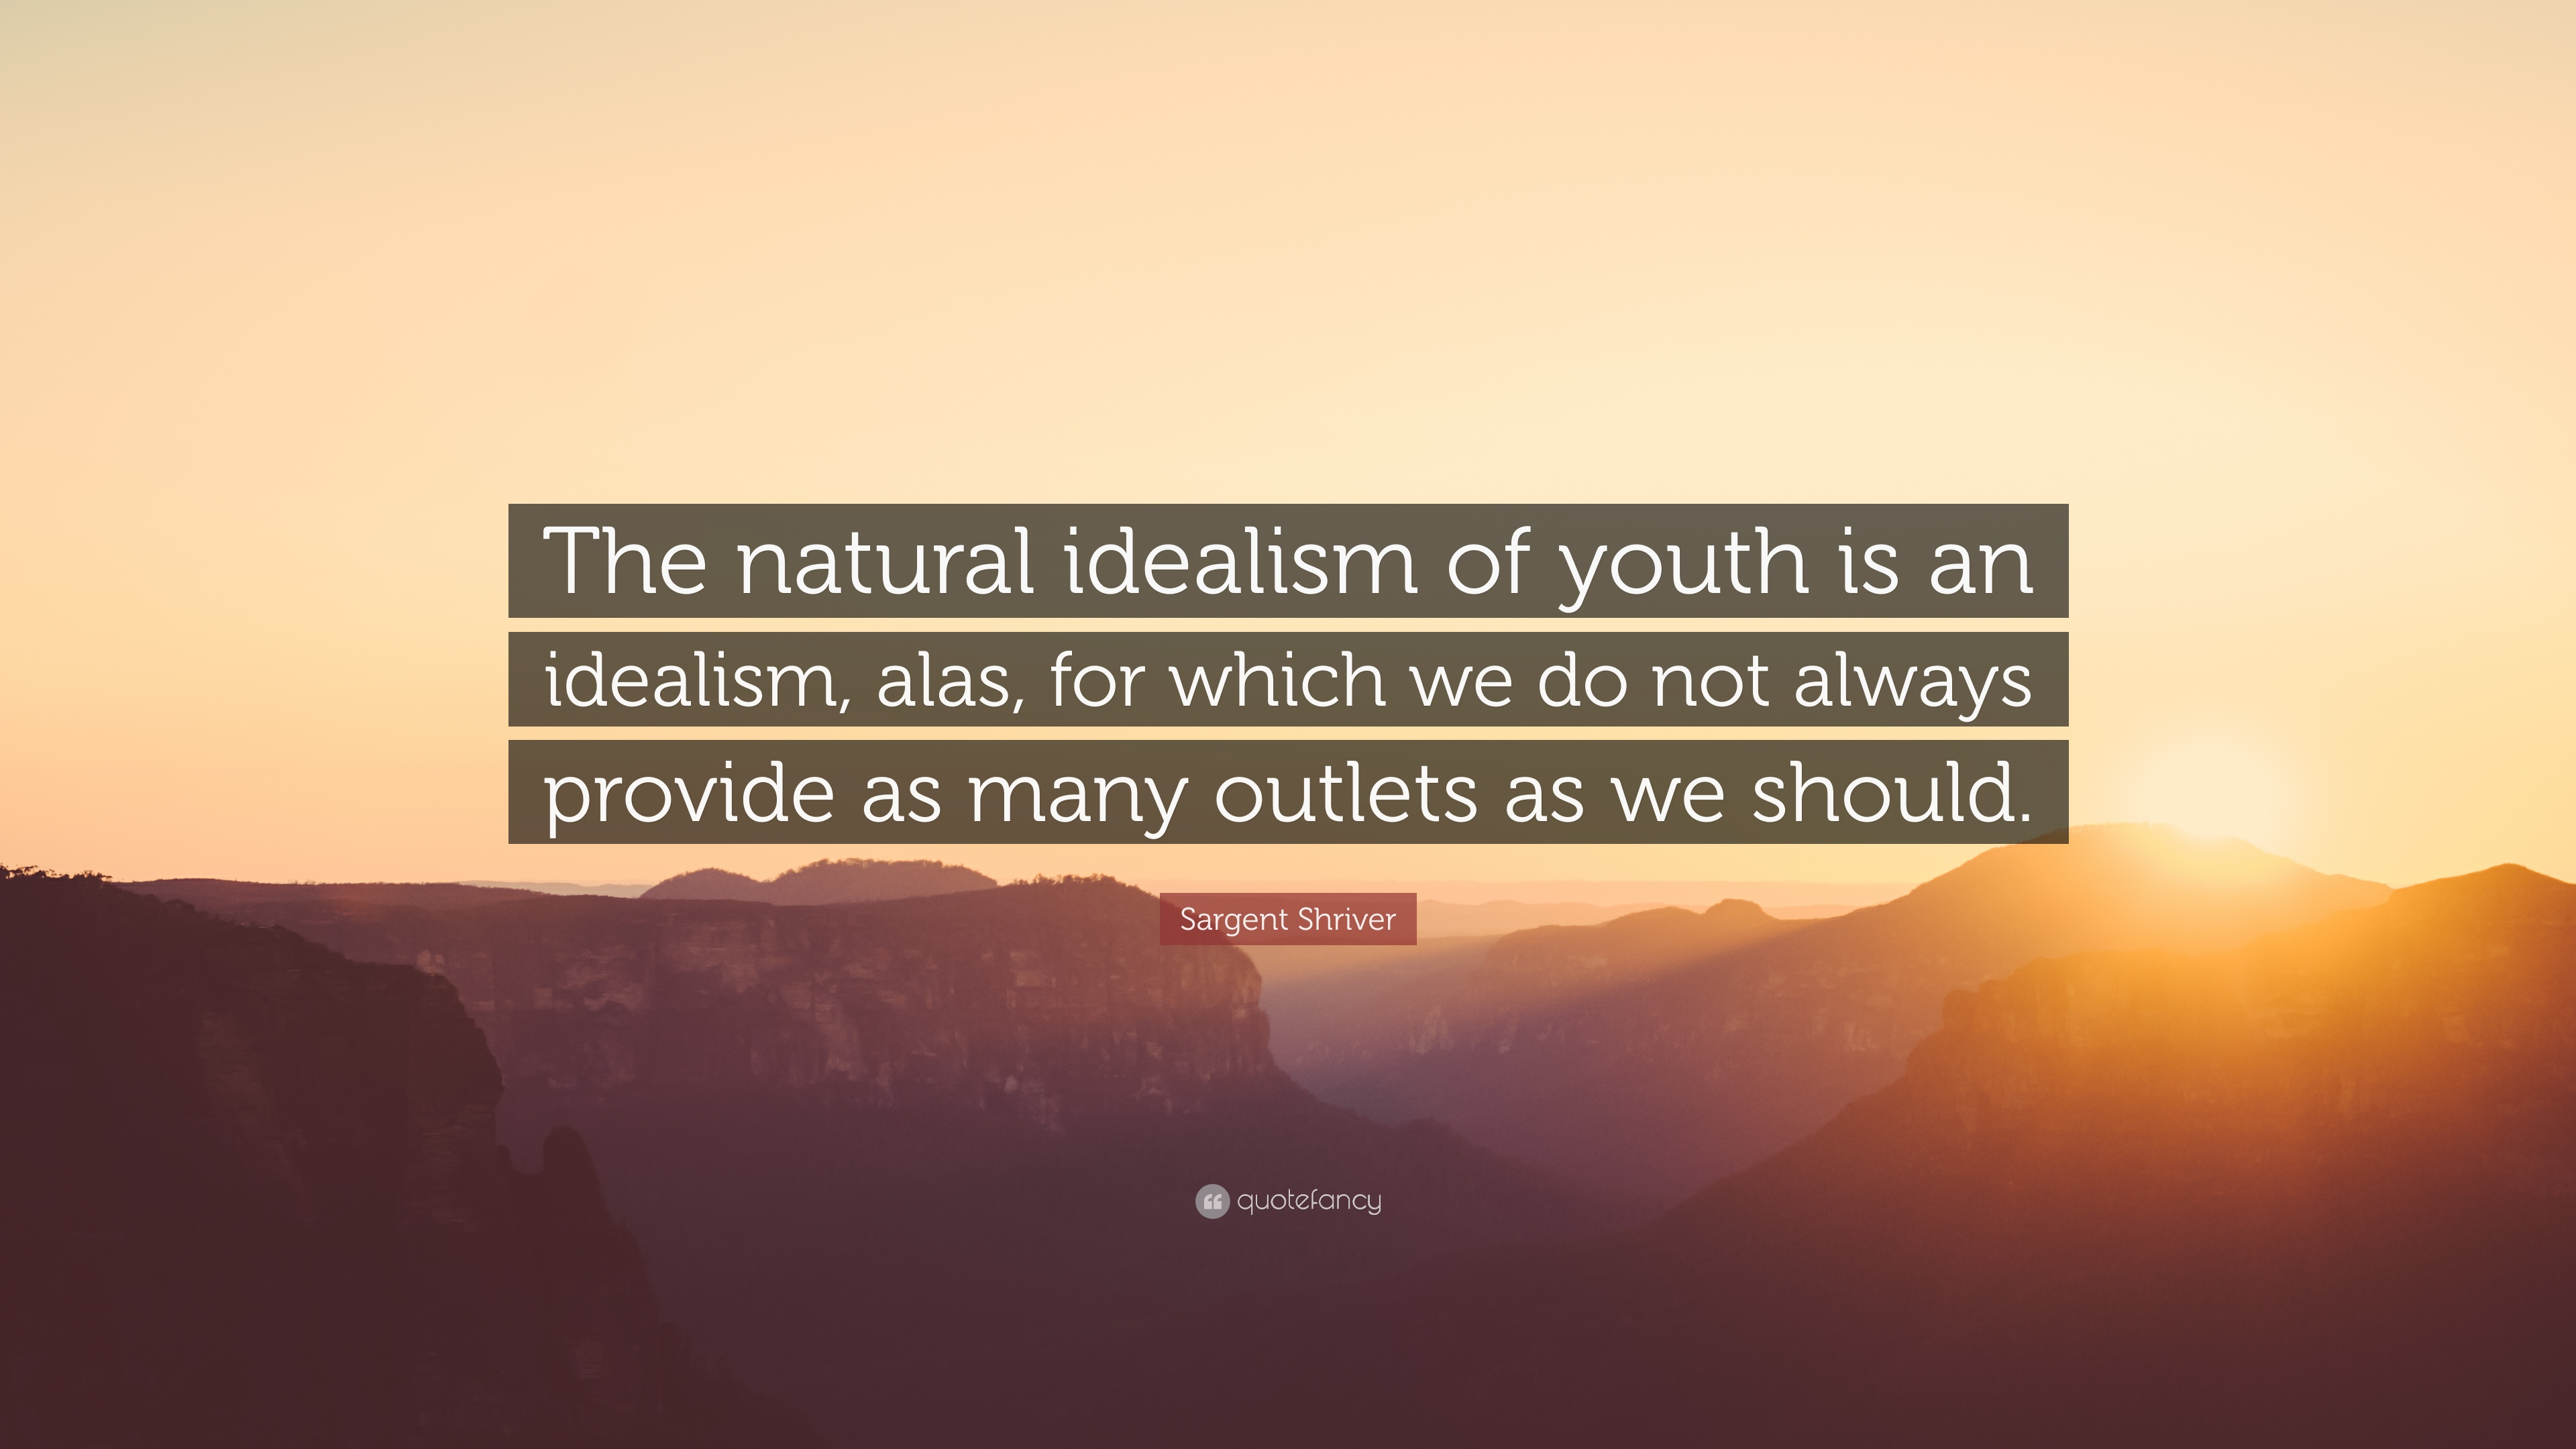 Idealism and passions of youth essay